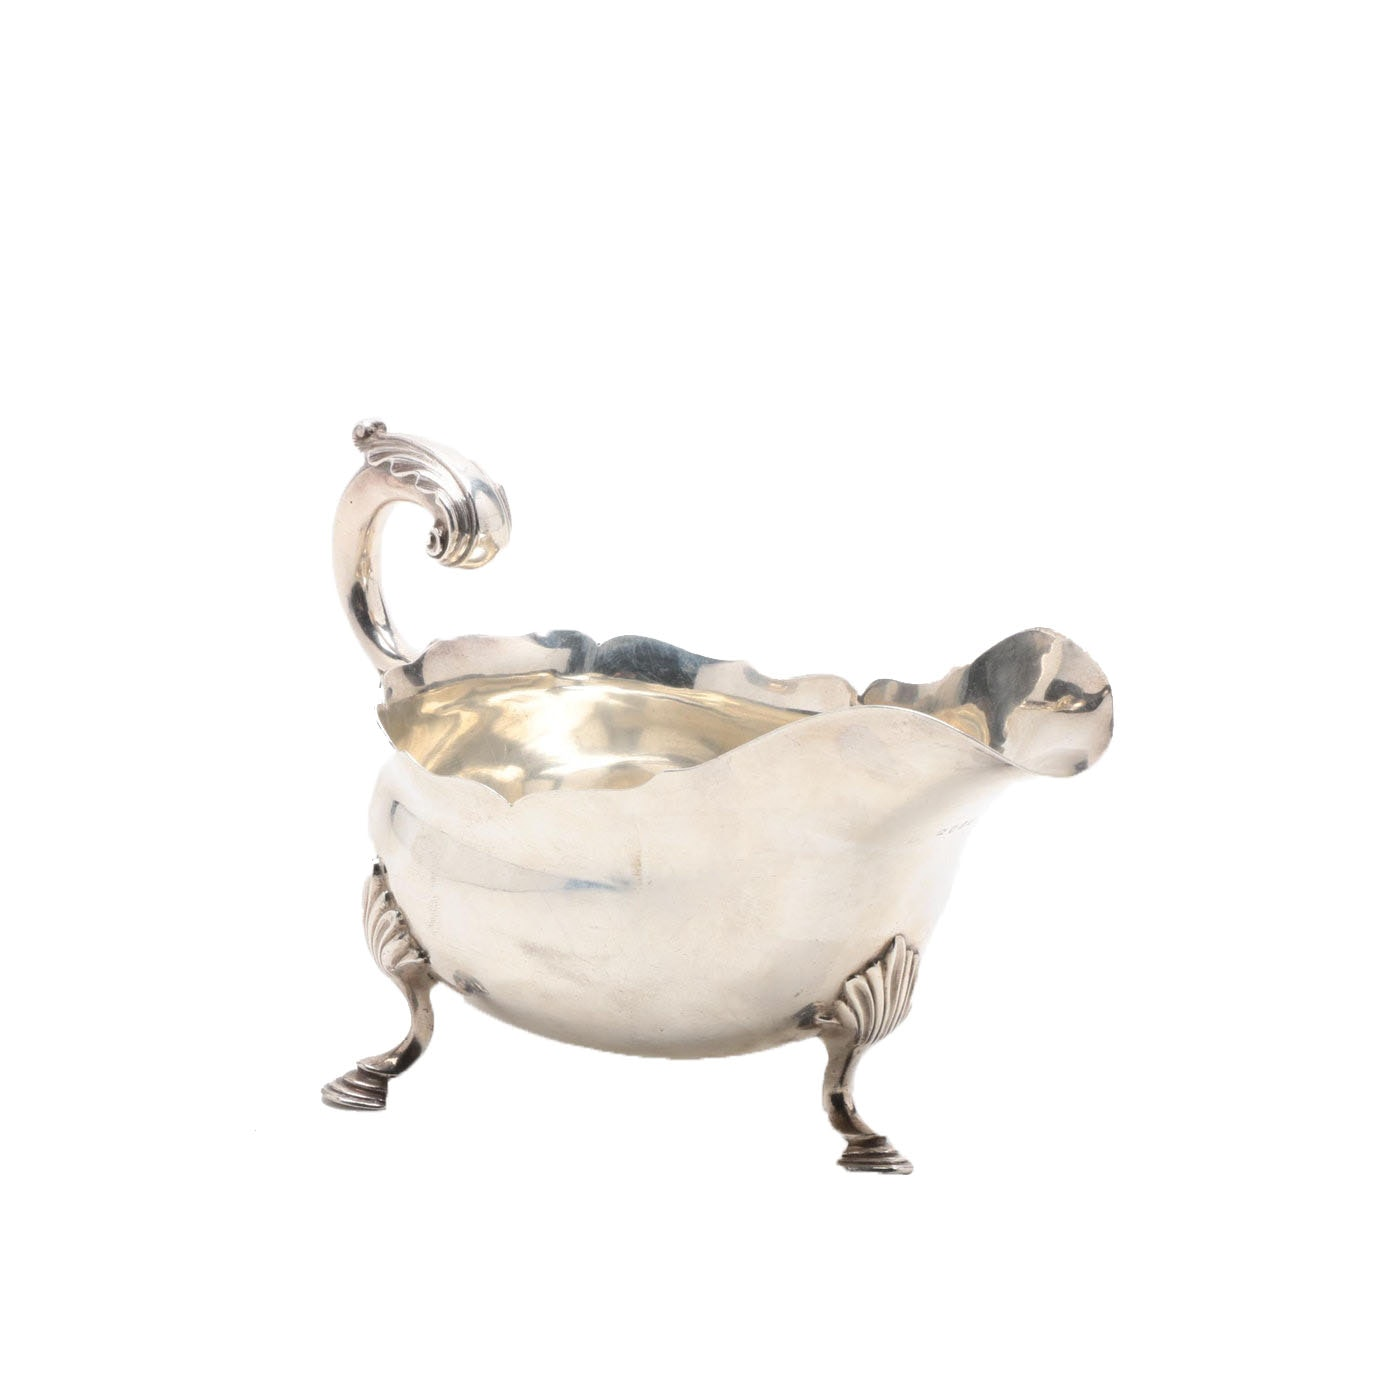 George III English Sterling Silver Sauce Boat